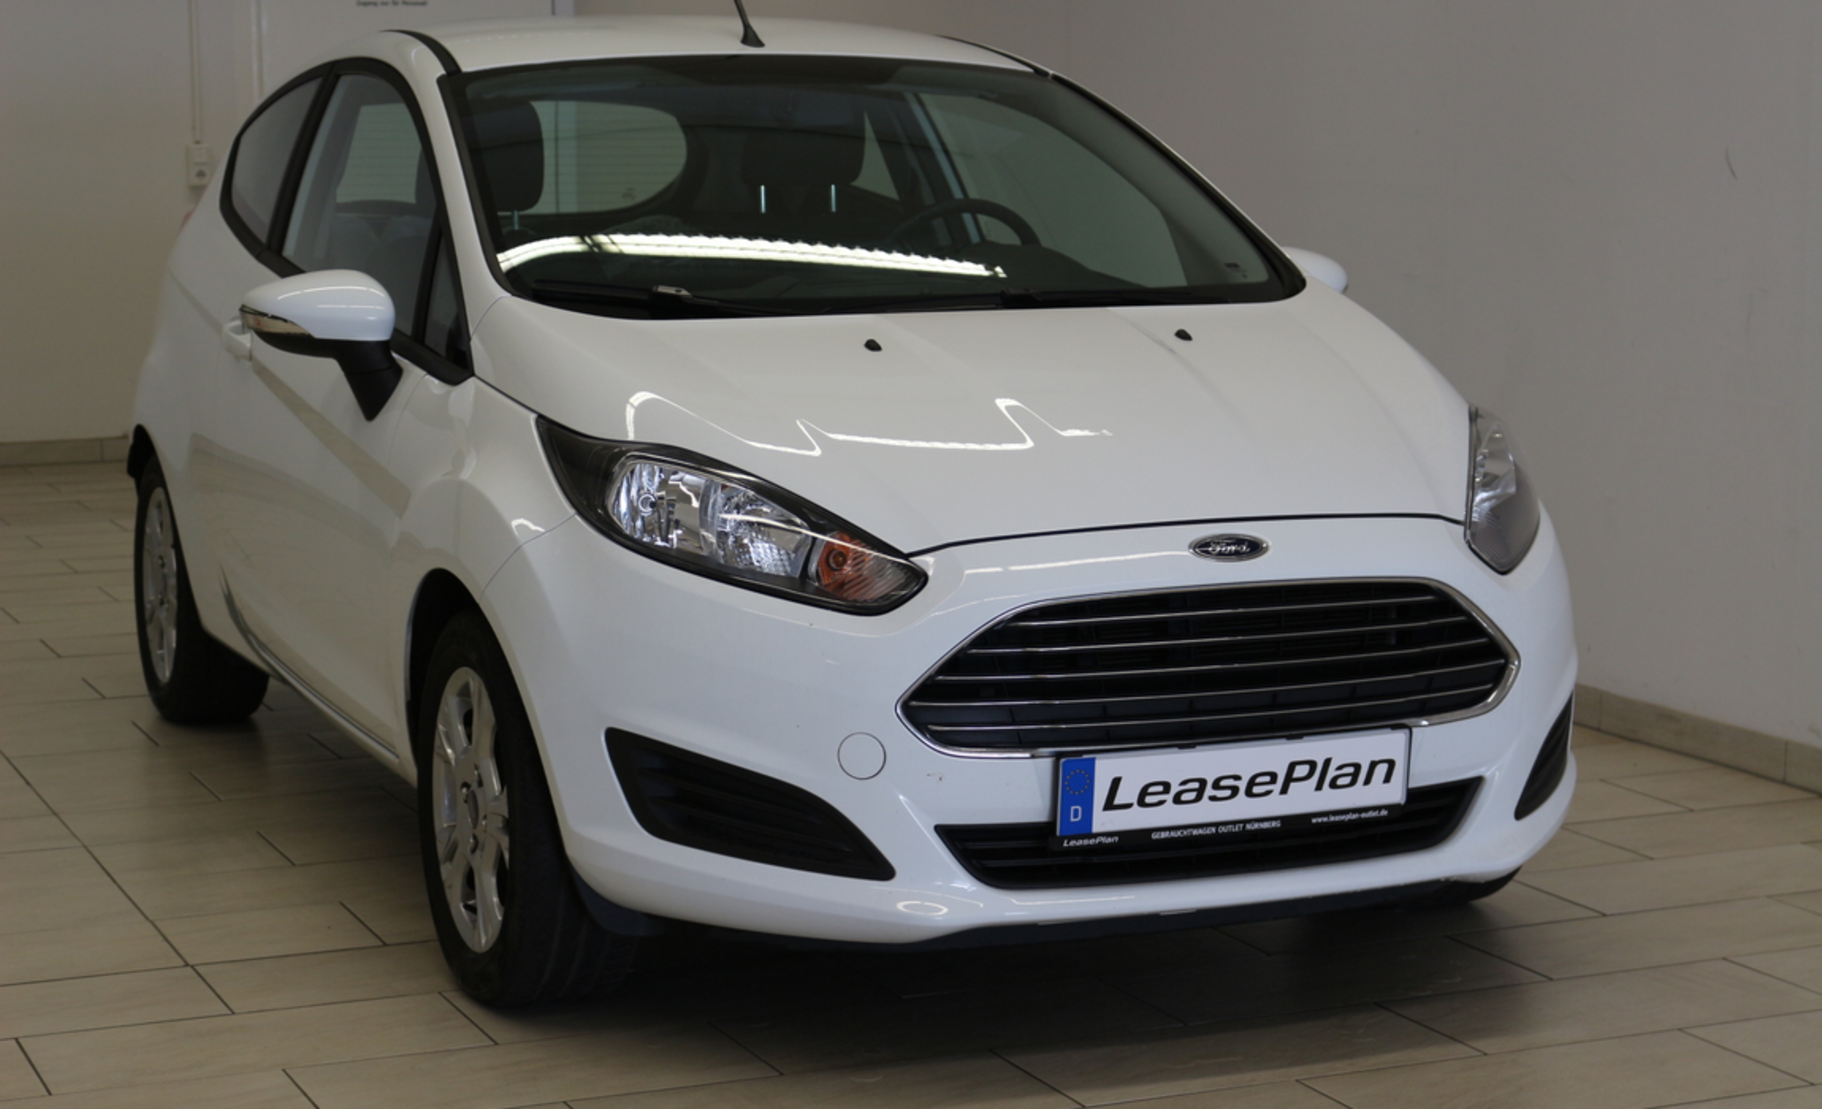 Ford Fiesta 1.0 Start-Stop SYNC Edition (533798) detail1